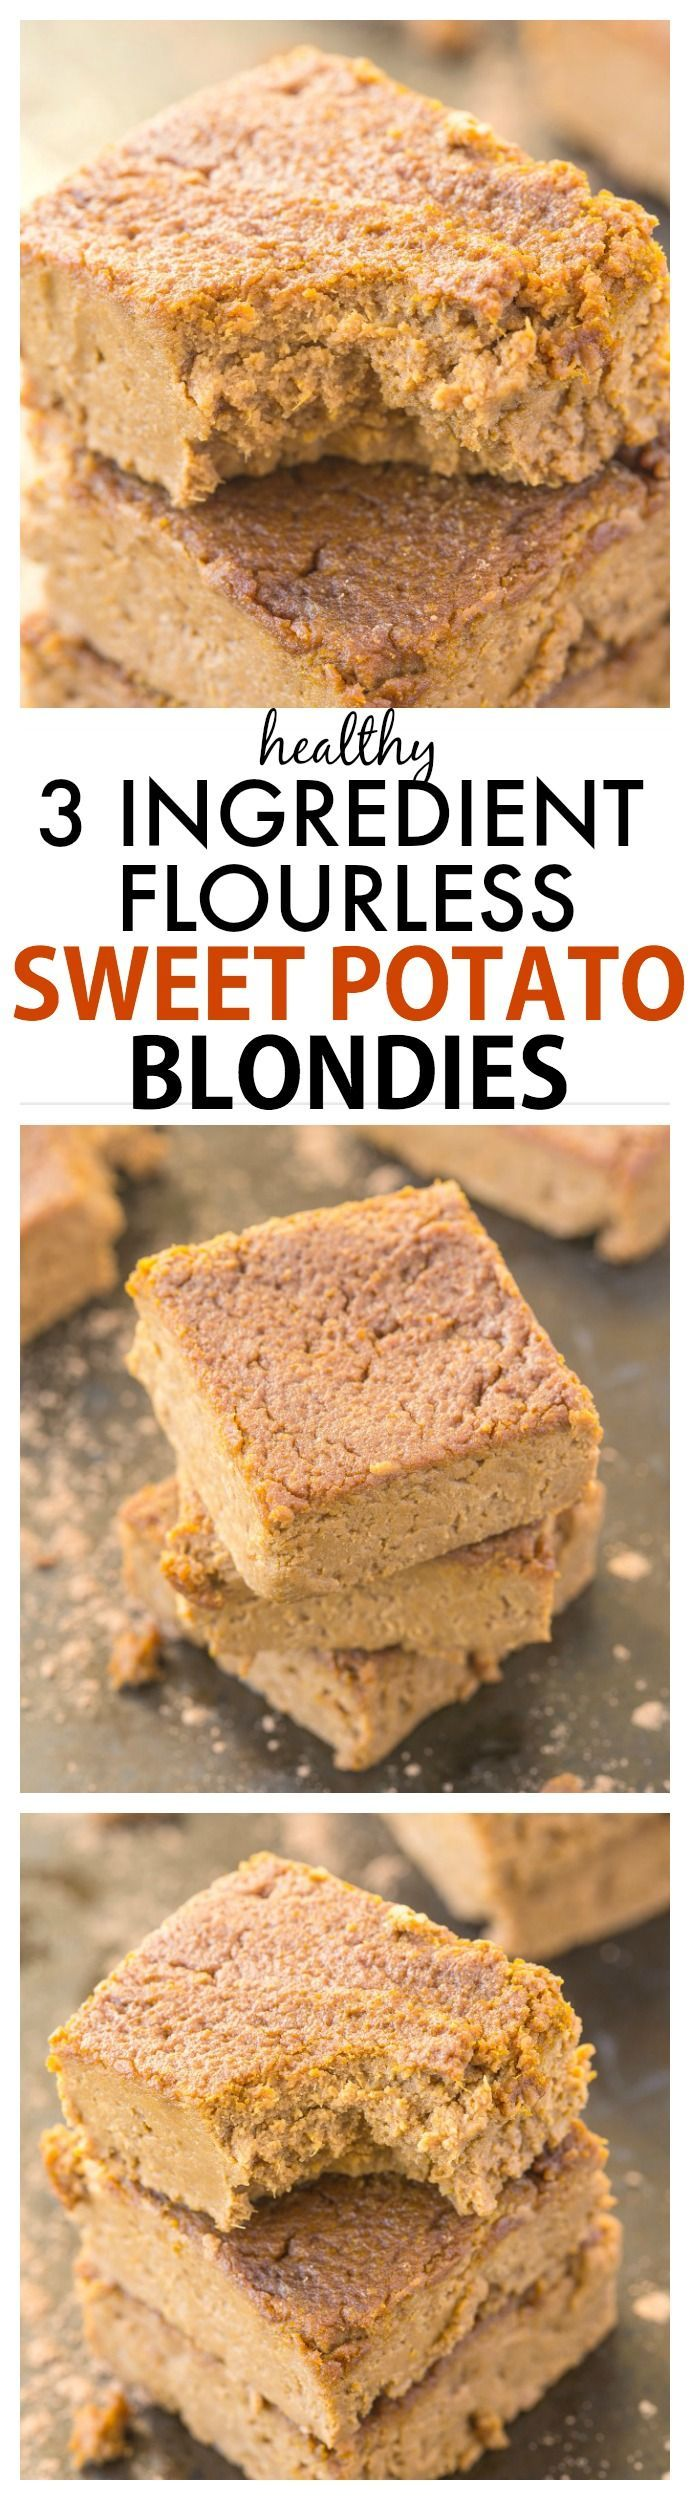 3 Ingredient Flourless Sweet Potato Blondies recipe- Delicious, melt in your mouth blondies (only THREE ingredients!) which take minutes to make and are decadent yet SO healthy- There NO flour, butter, sugar or oil! {vegan, gluten free, paleo}